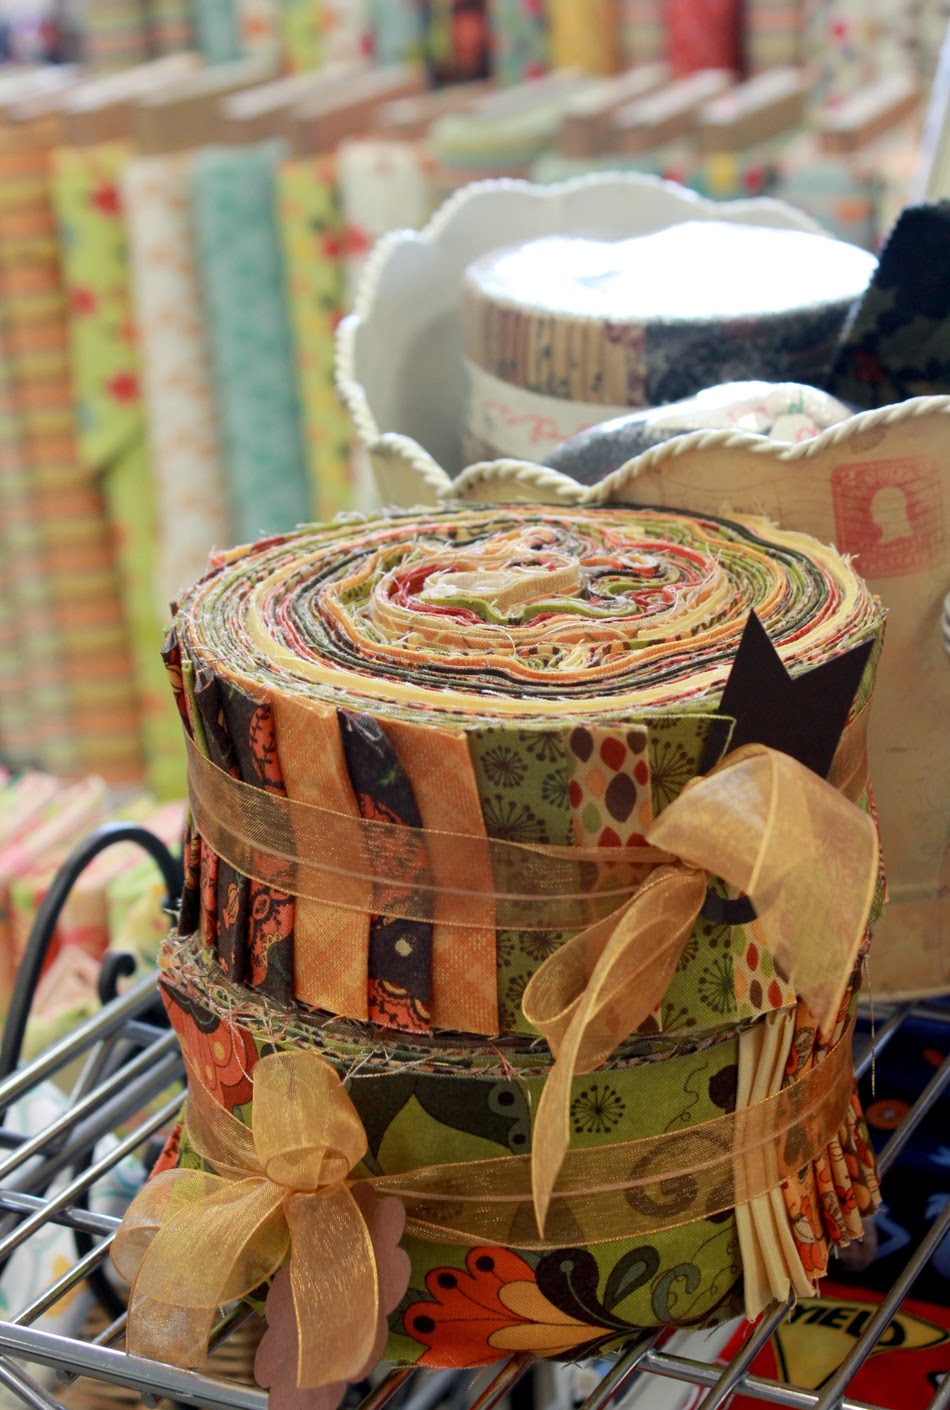 Pretty custom jelly roll bundles found at The Fabric Mill!